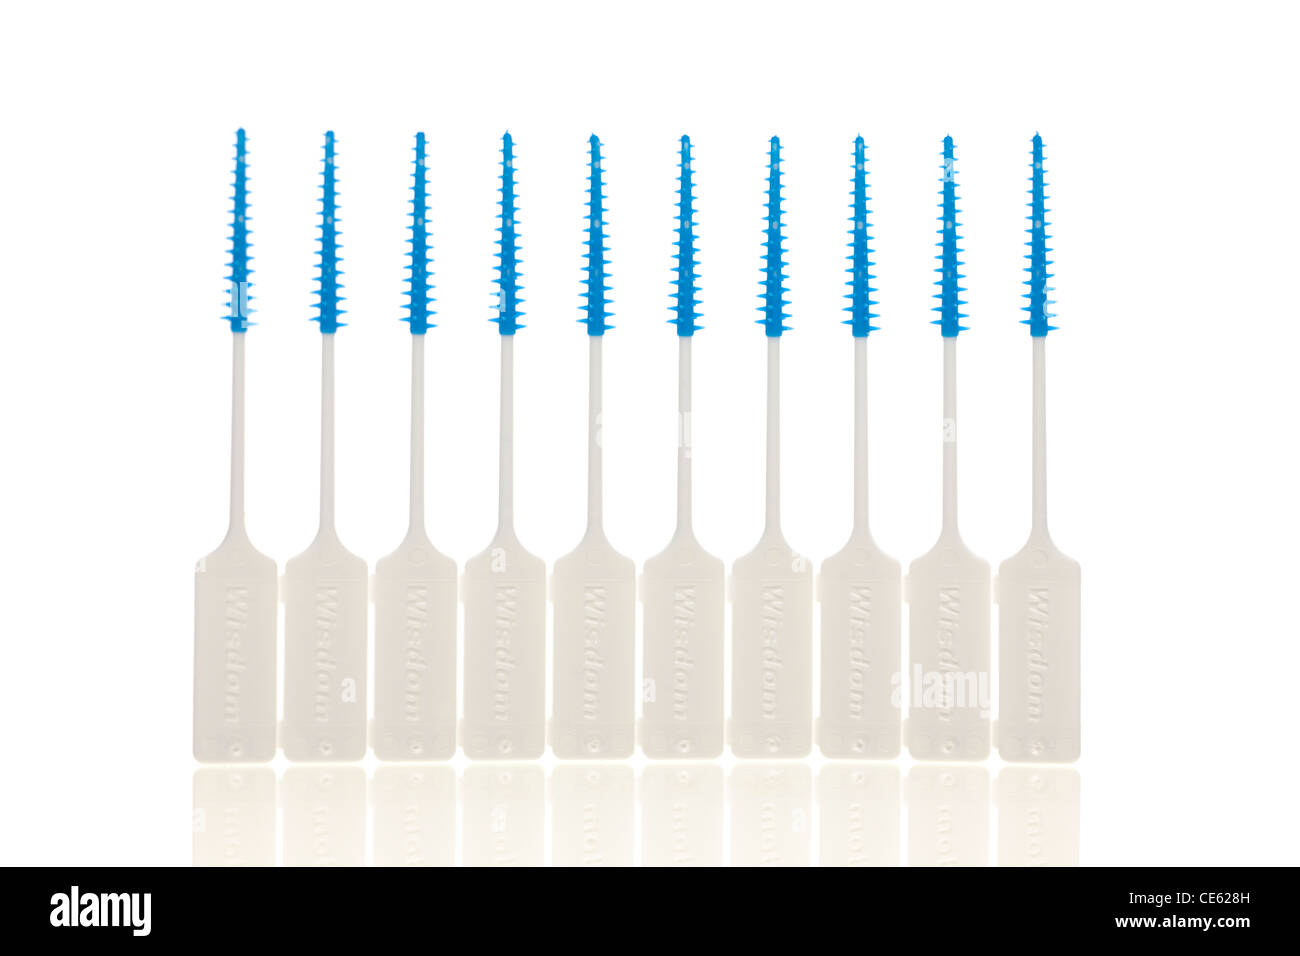 10 interdental tooth brushes - Stock Image